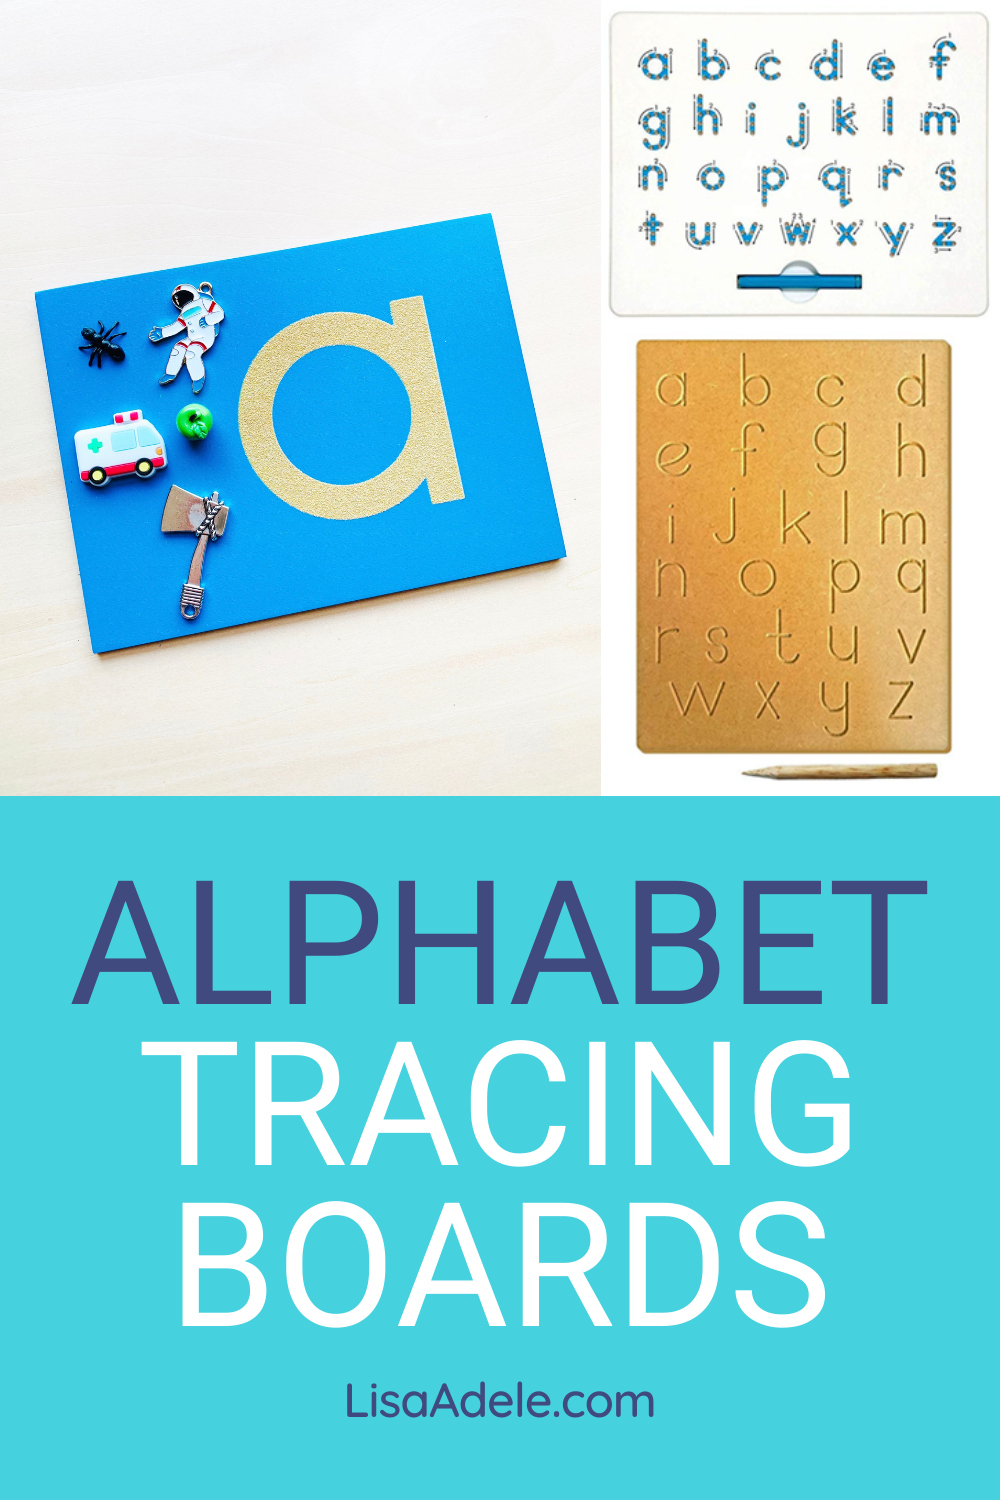 Are Alphabet Tracing Boards Good For Learning Letters